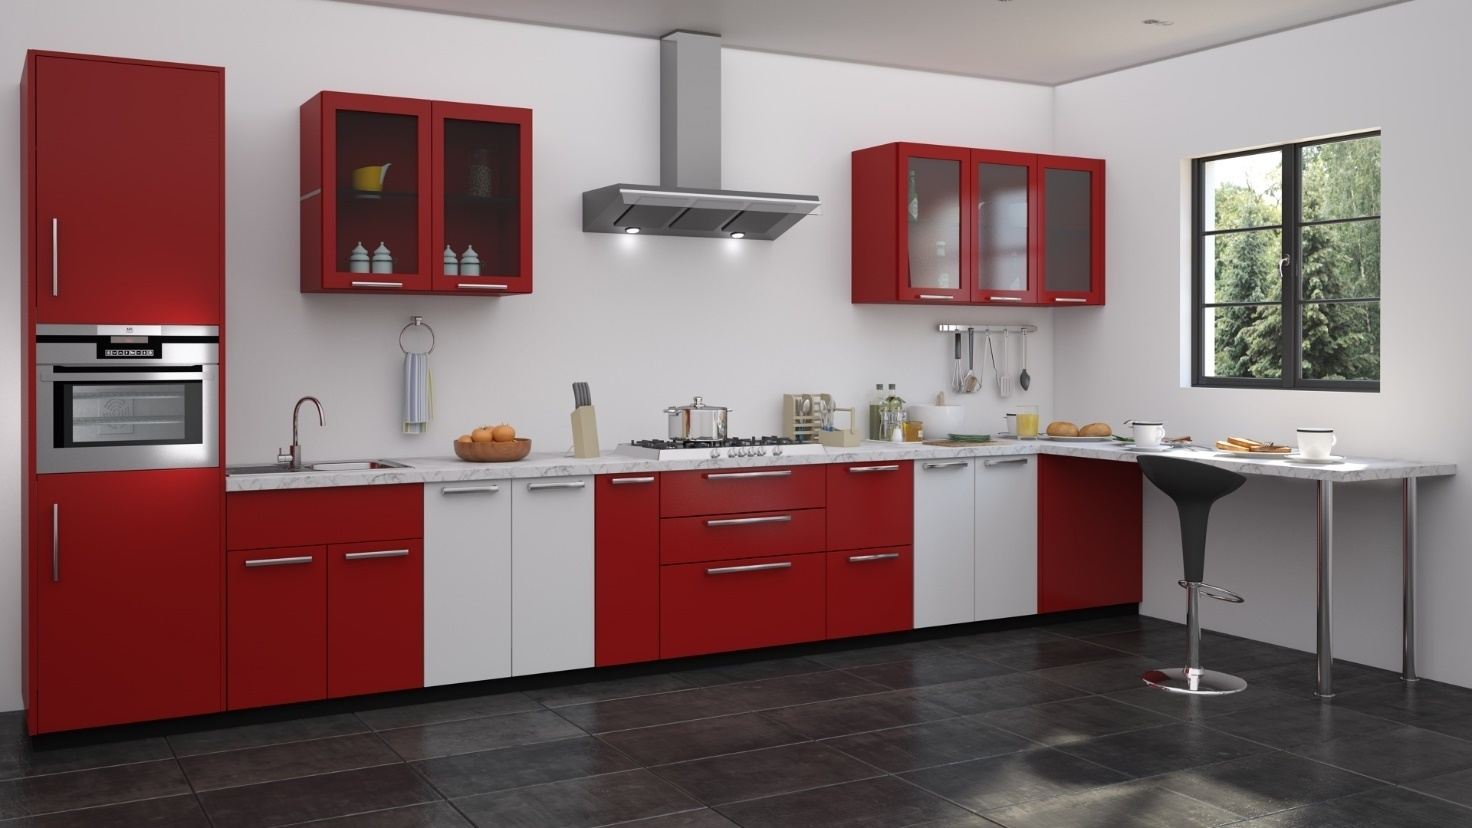 Awesome Kitchen Décor Ideas - Interior Design Explained